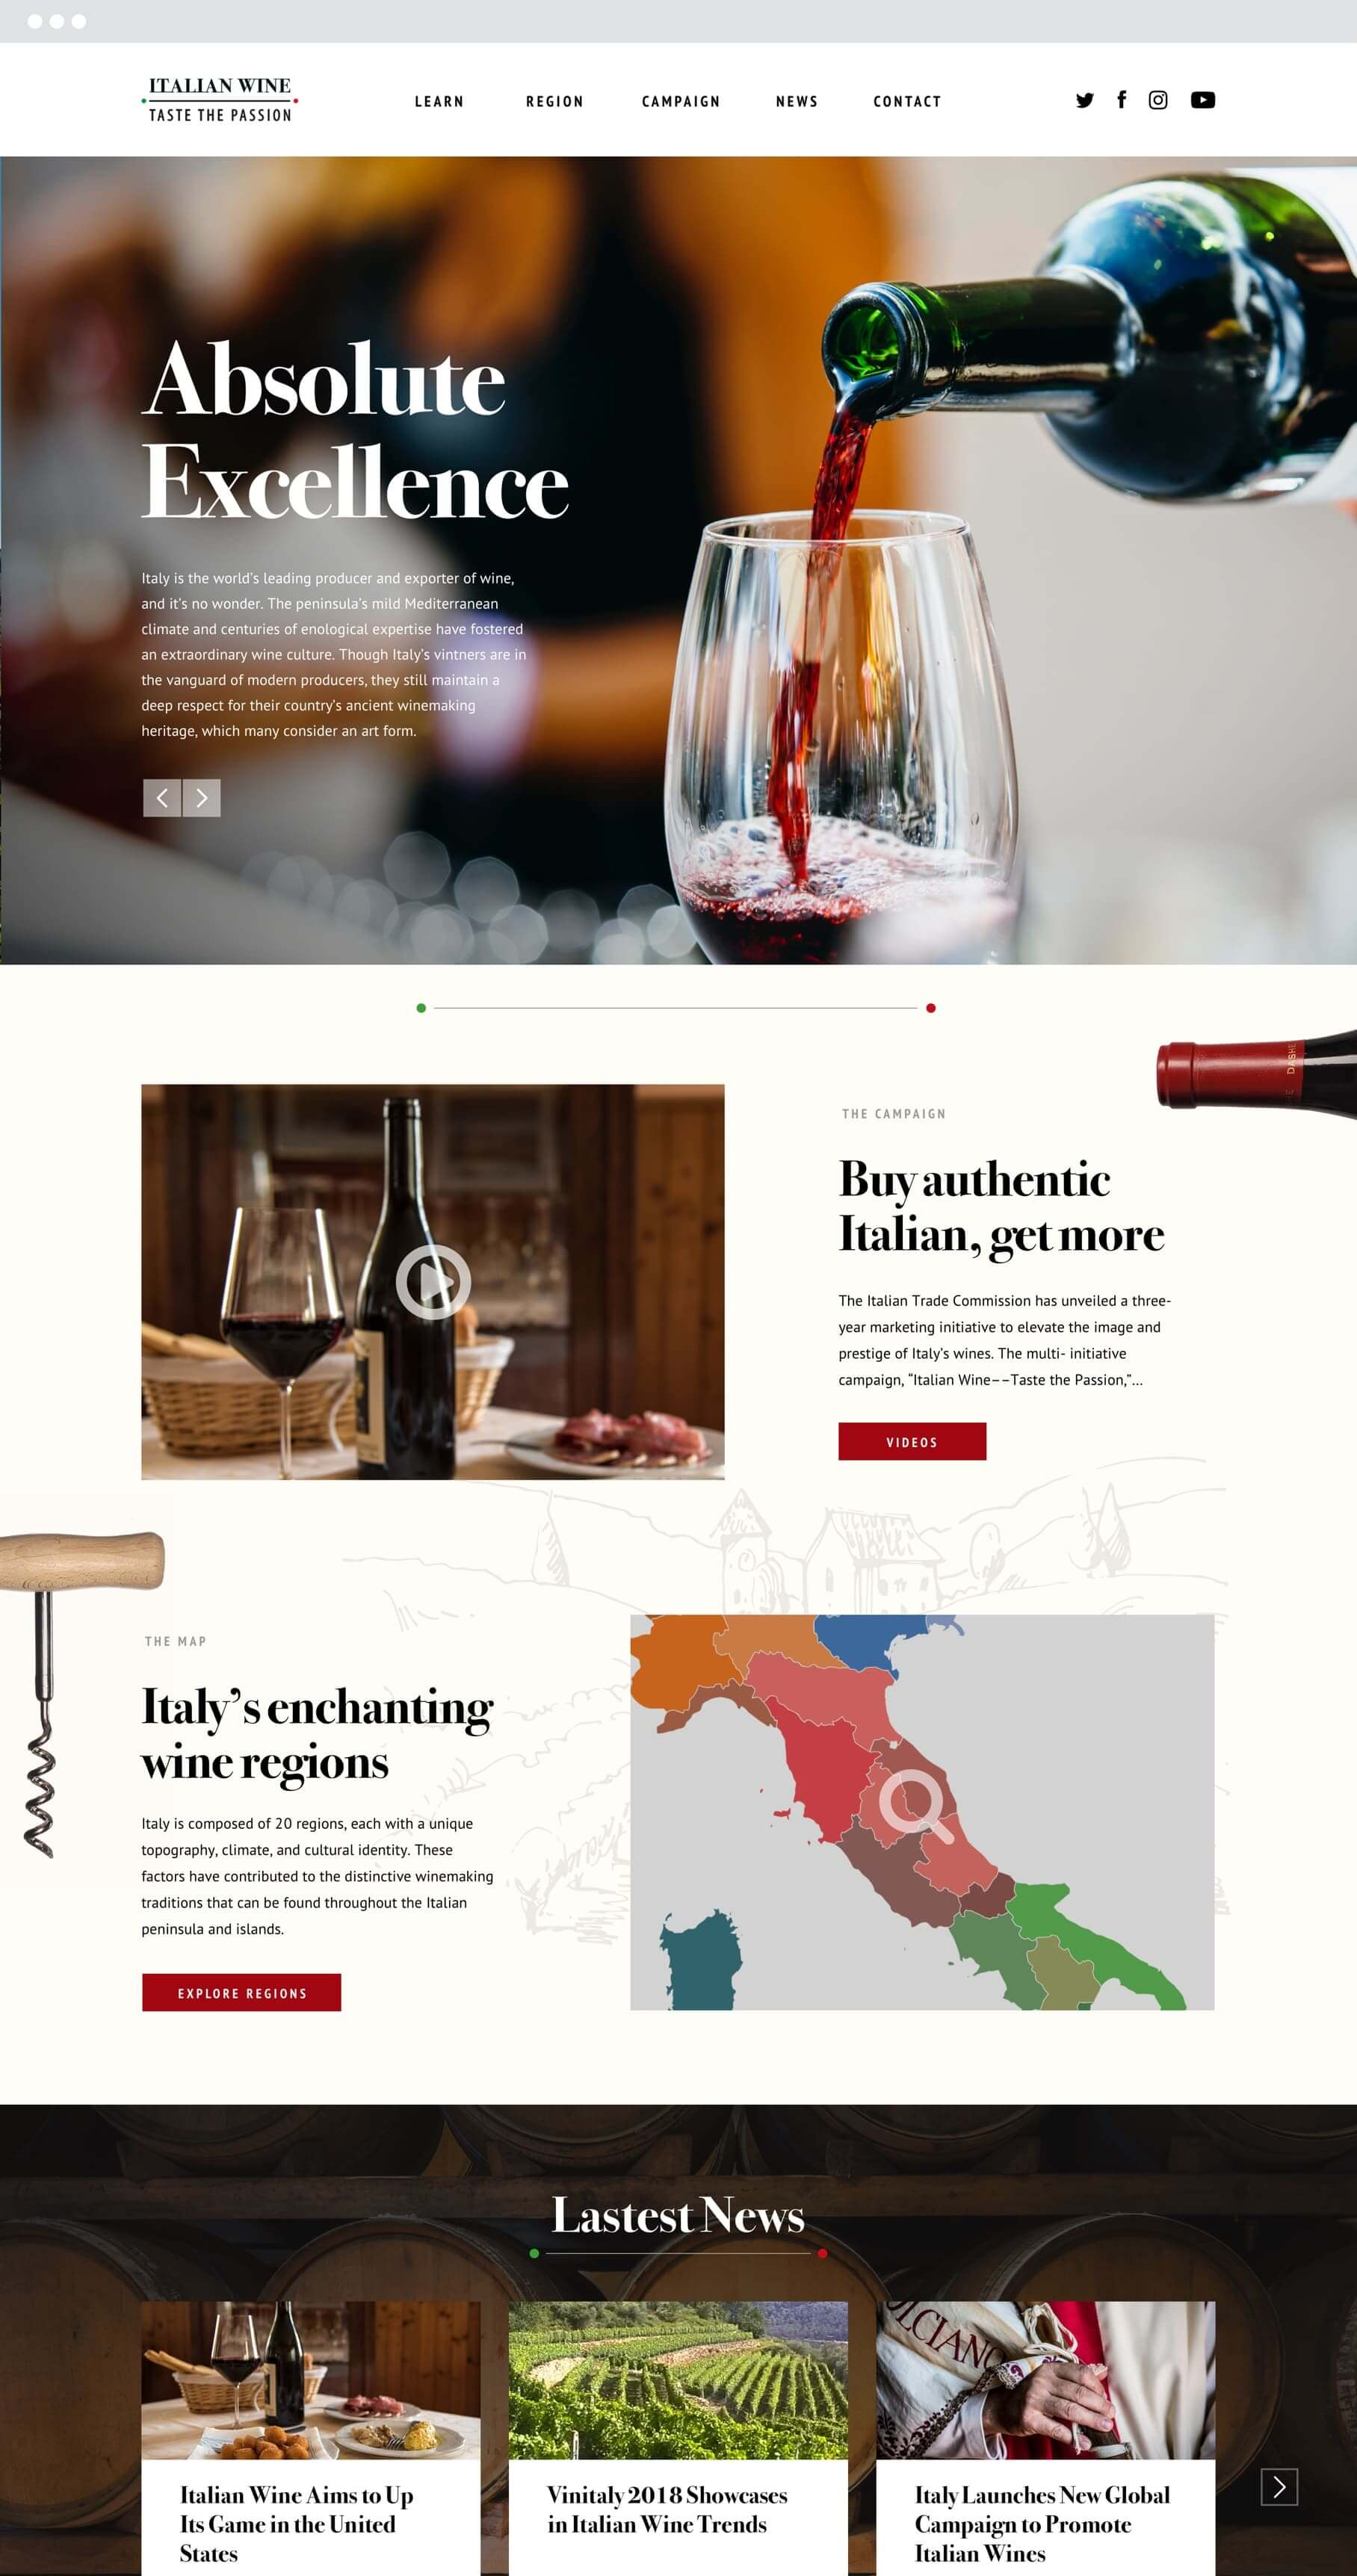 homepage view of italian wine page